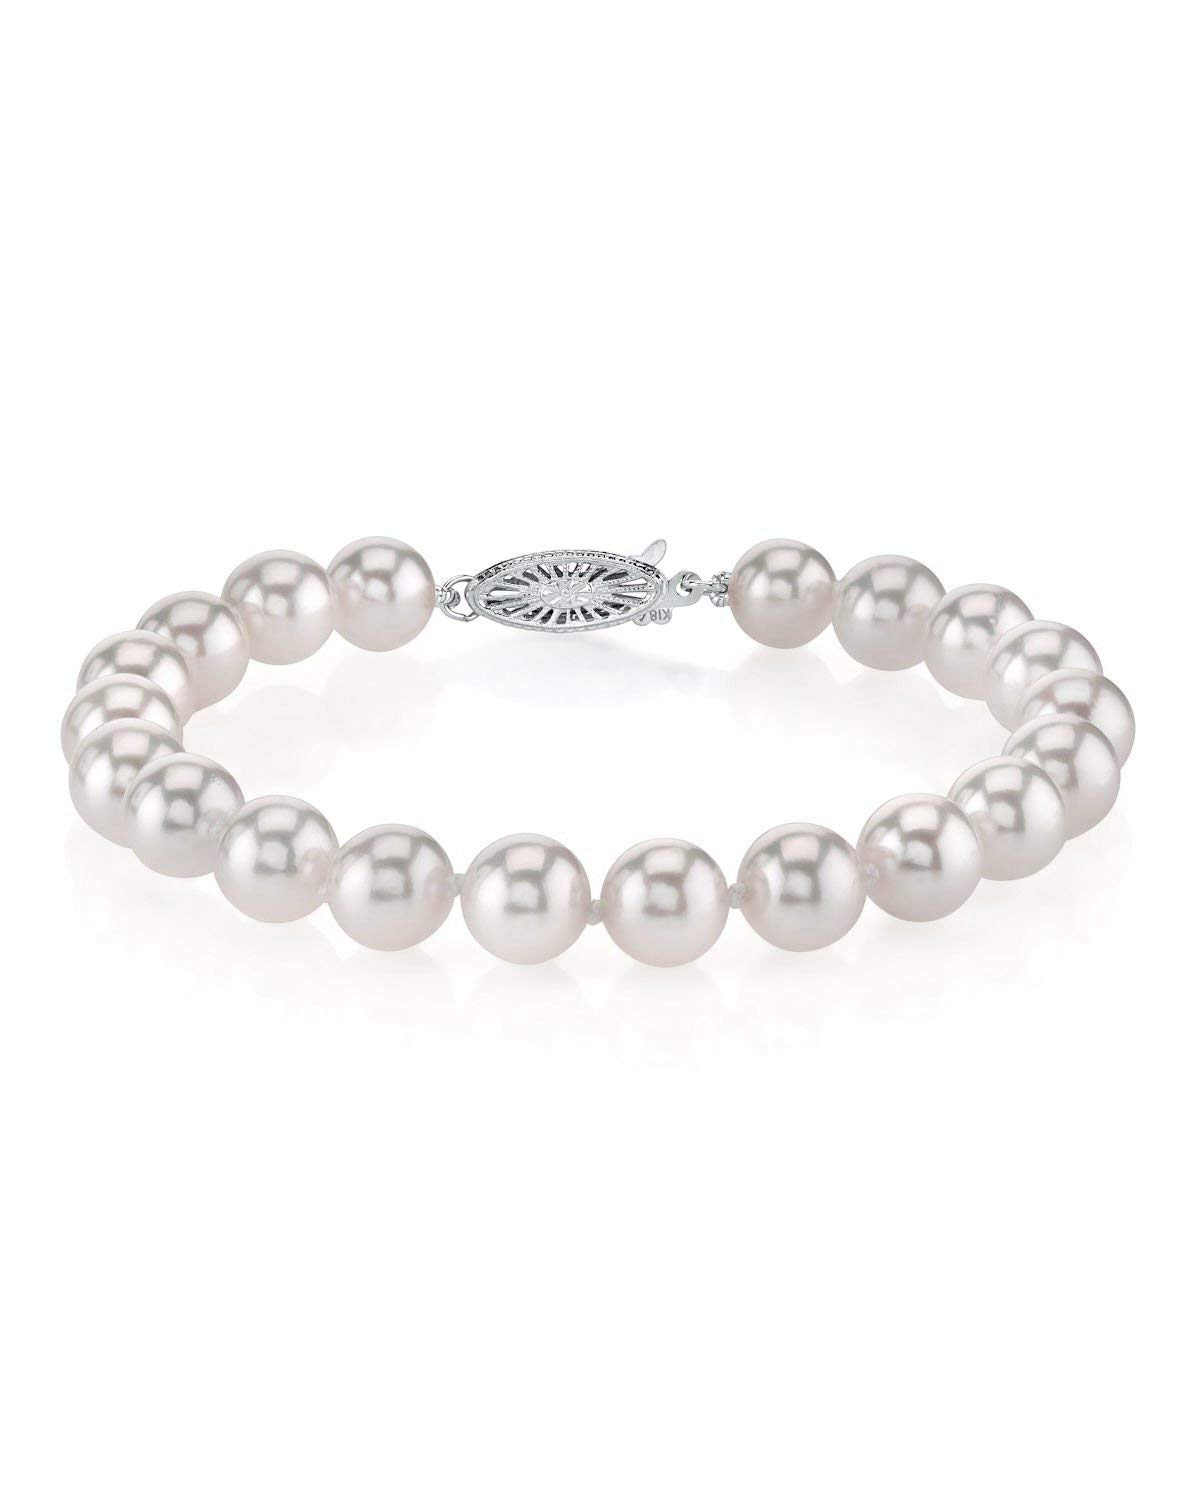 THE PEARL SOURCE 18K Gold 7.5-8mm AAA Quality Round White Japanese Akoya Saltwater Cultured Pearl Bracelet for Women